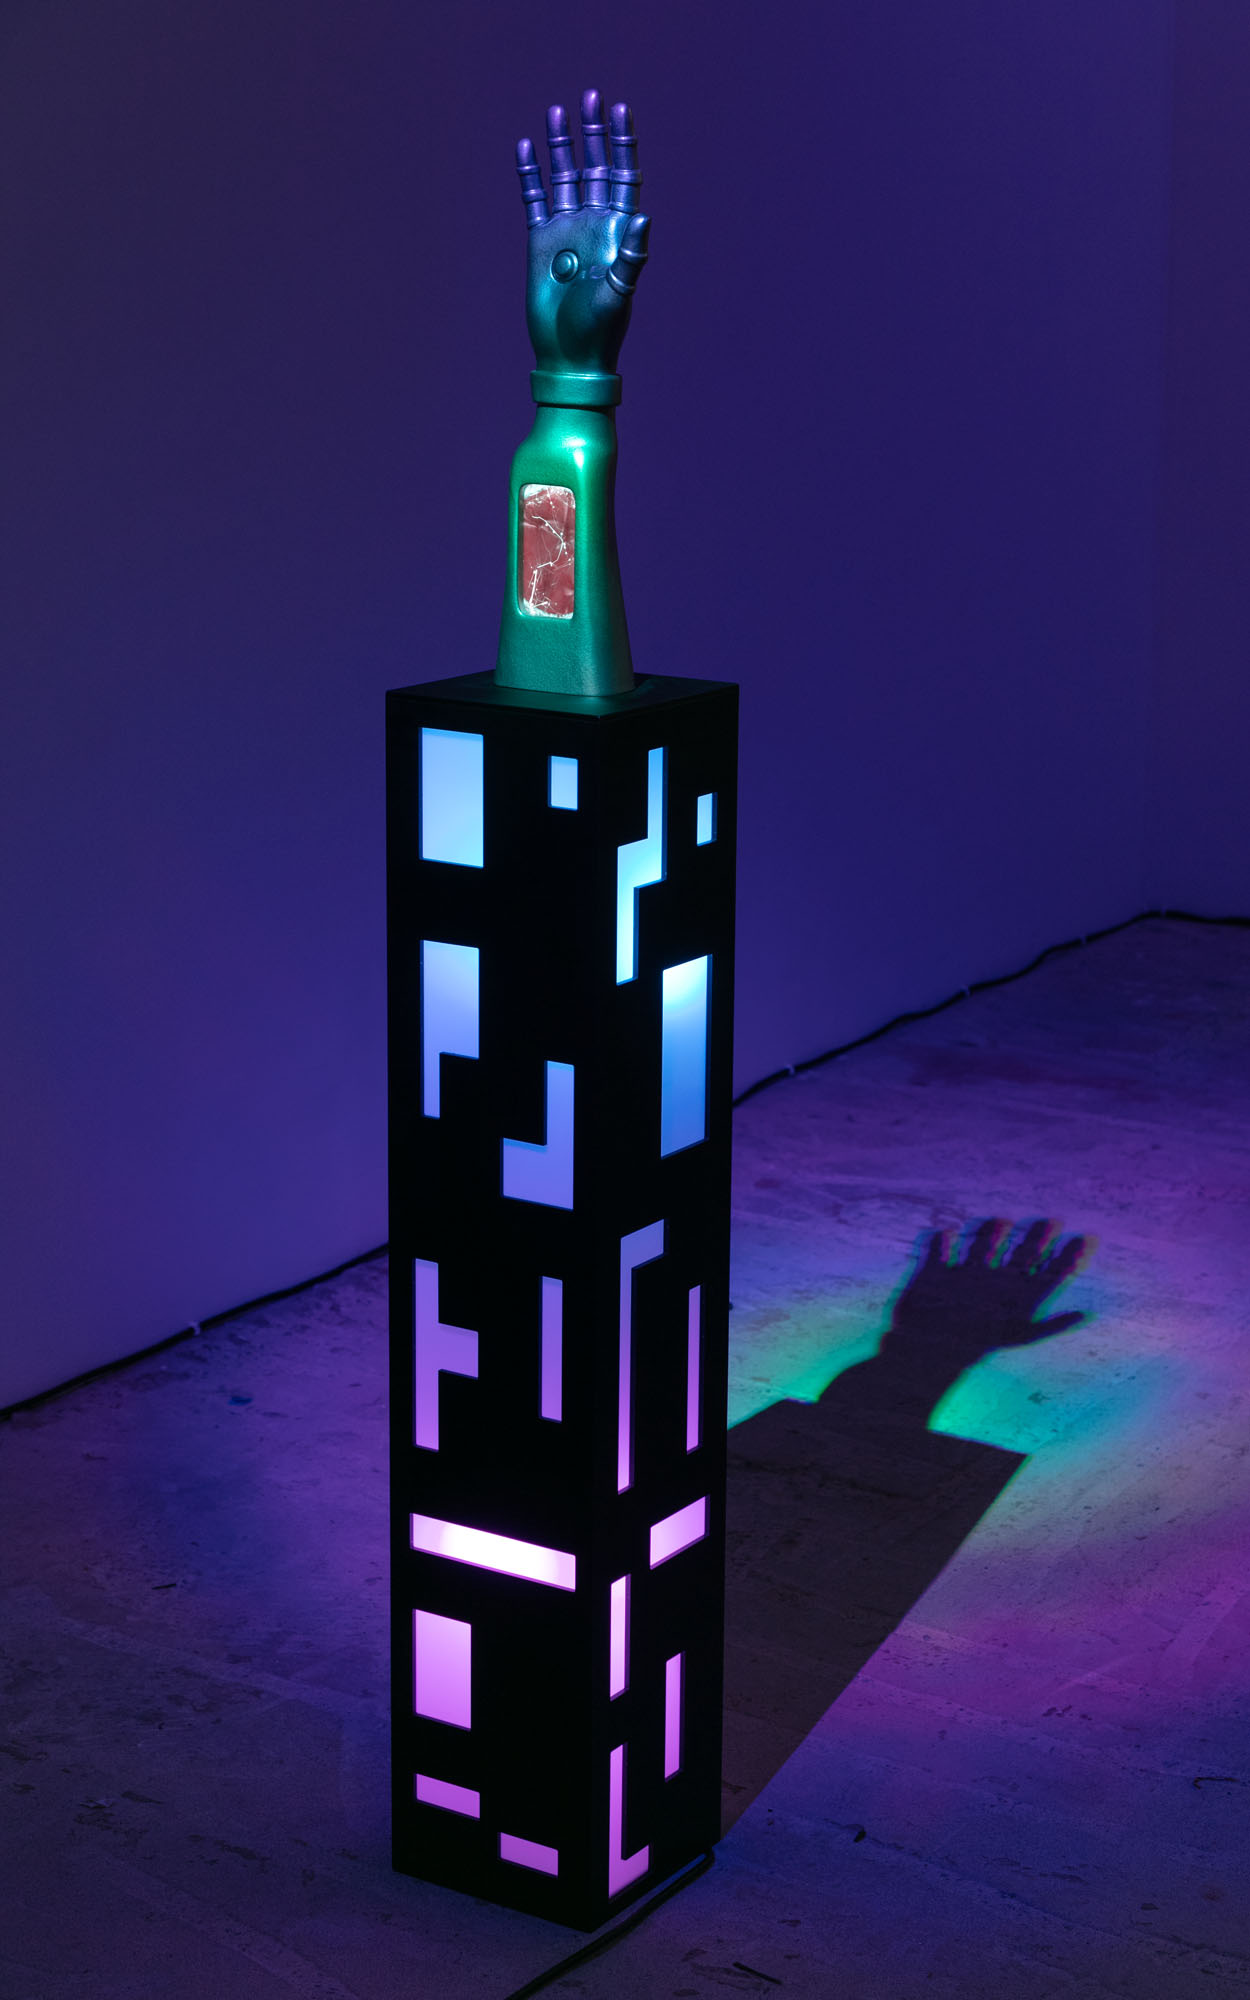 Phillip Birch   The Arm of Shevak , 2017  Plexiglass, LED lights, 3D printed plastic, painted enamel  58 x 8 x8 inches  Unique